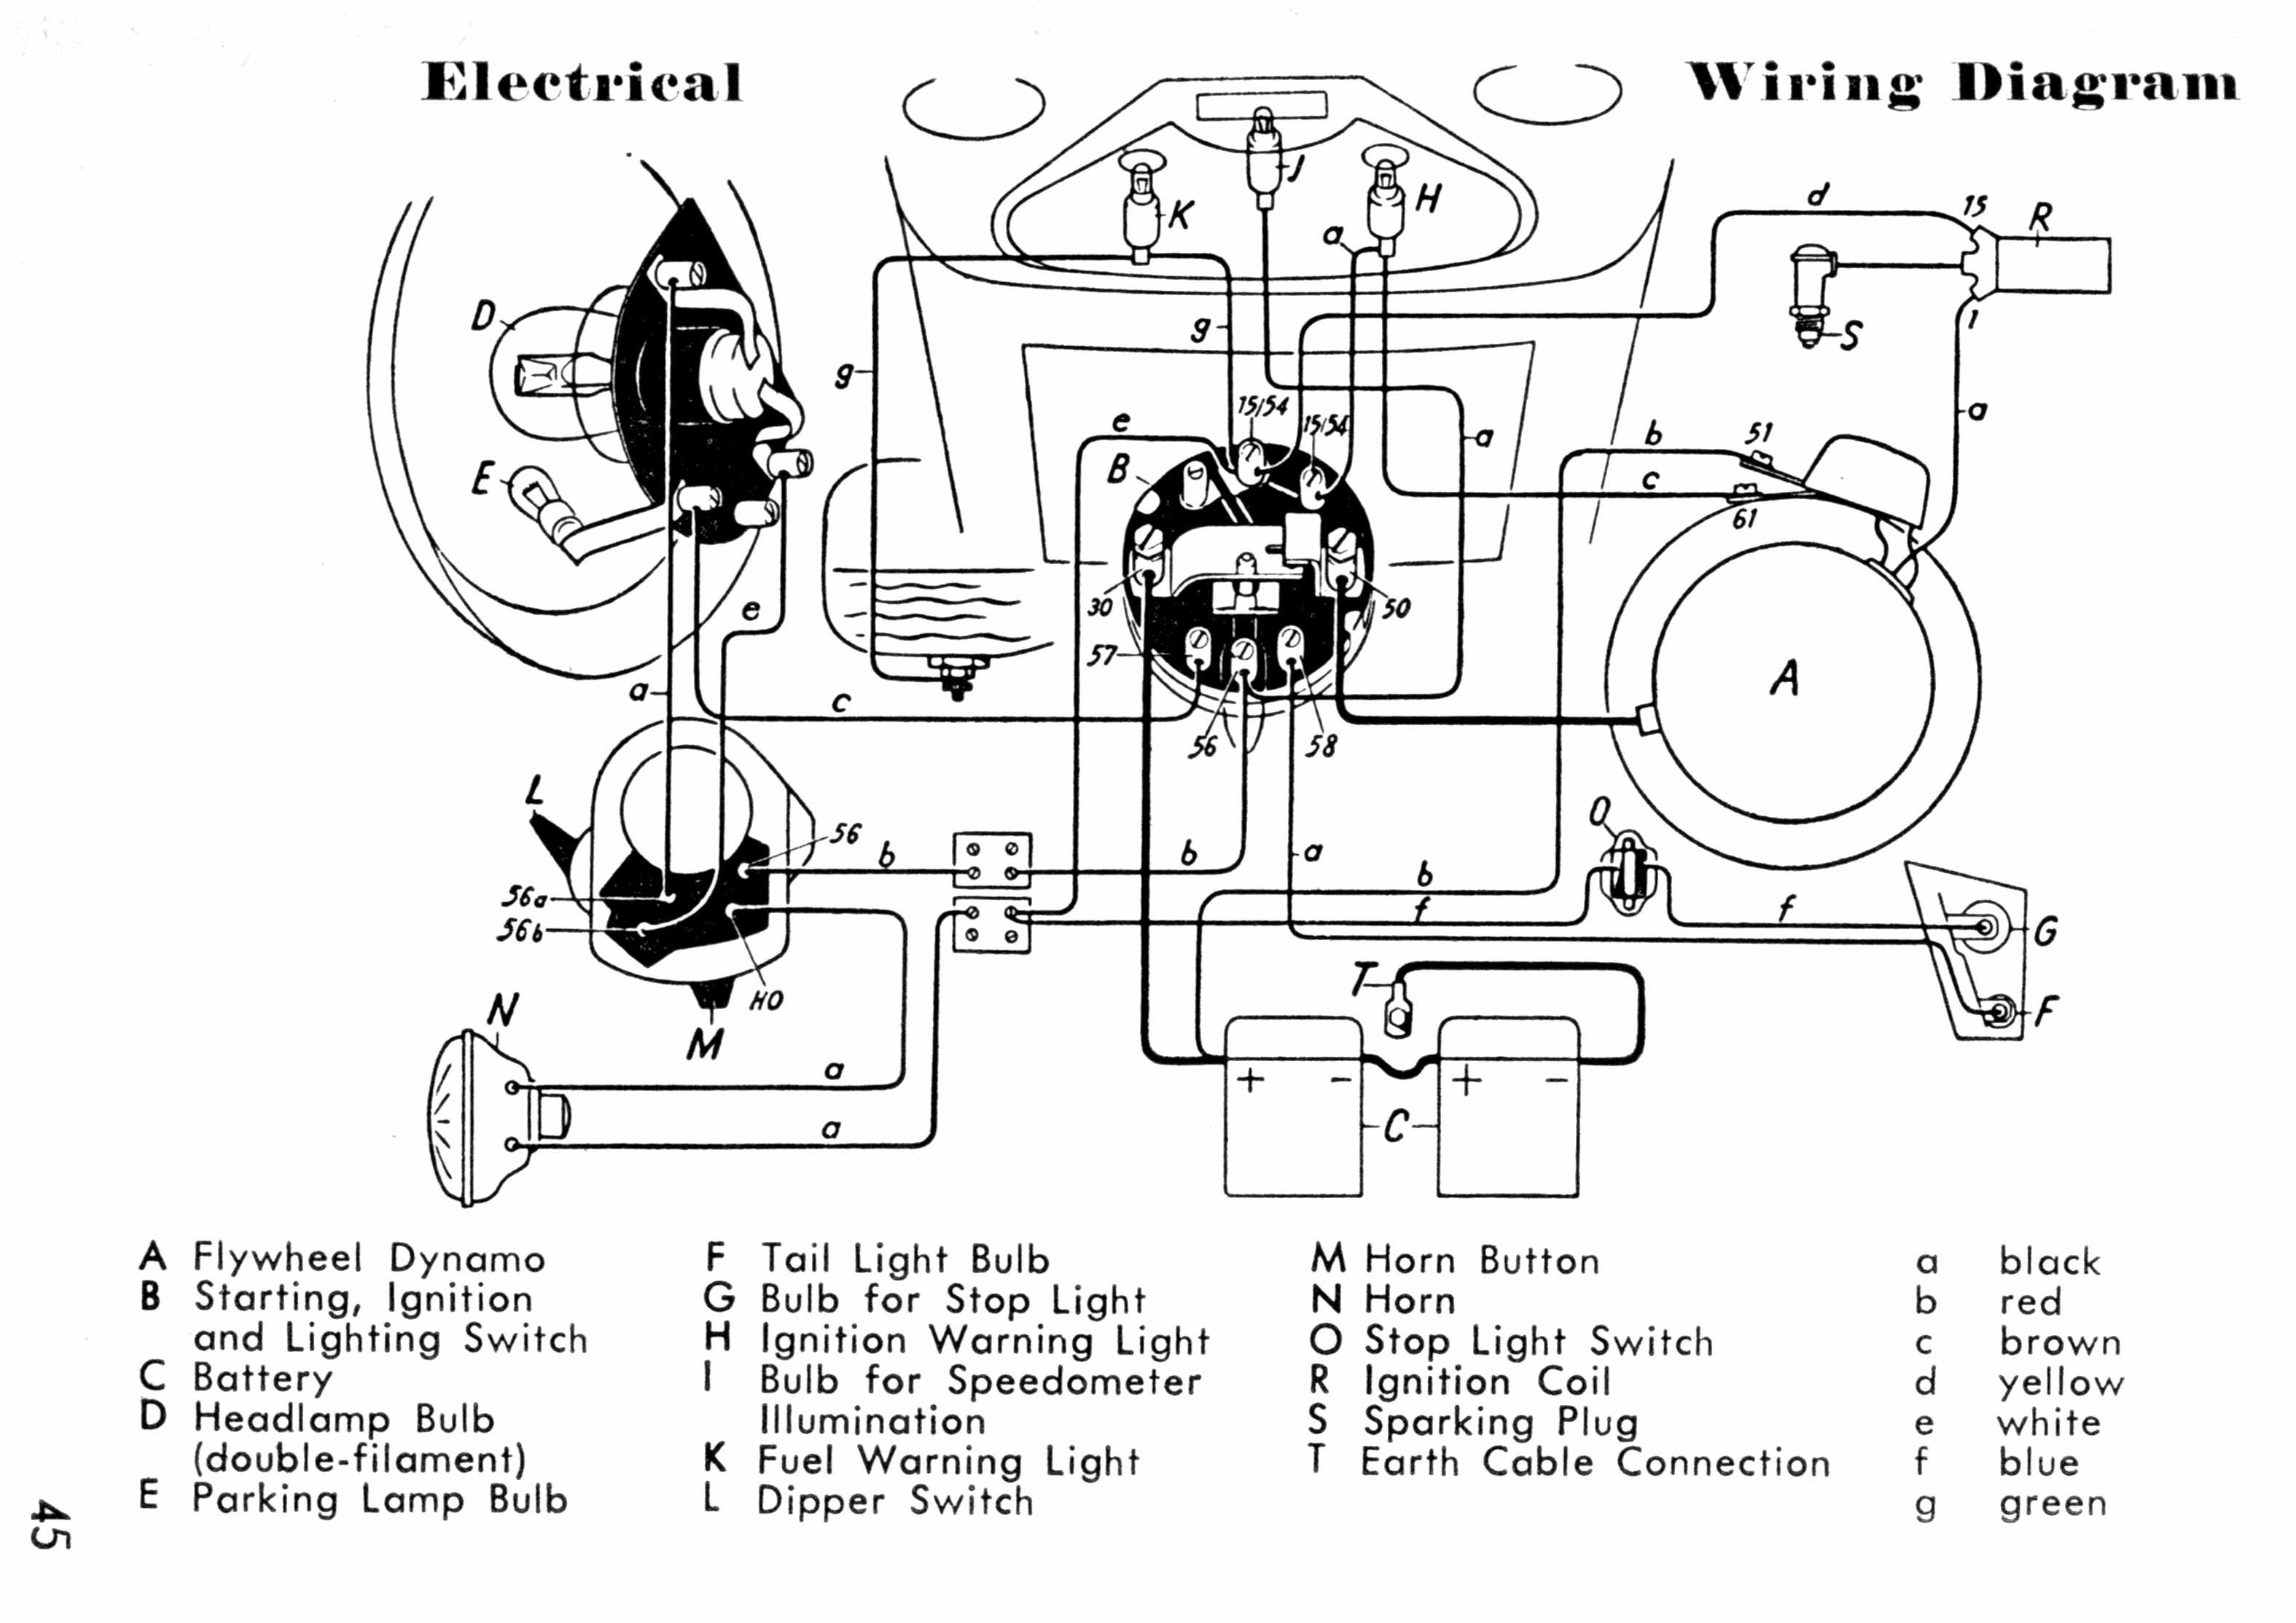 3ee73df4e7463c417fc349eccfcaade4 schematic electric scooter wiring diagram closet pinterest scooter ignition wiring diagram at eliteediting.co